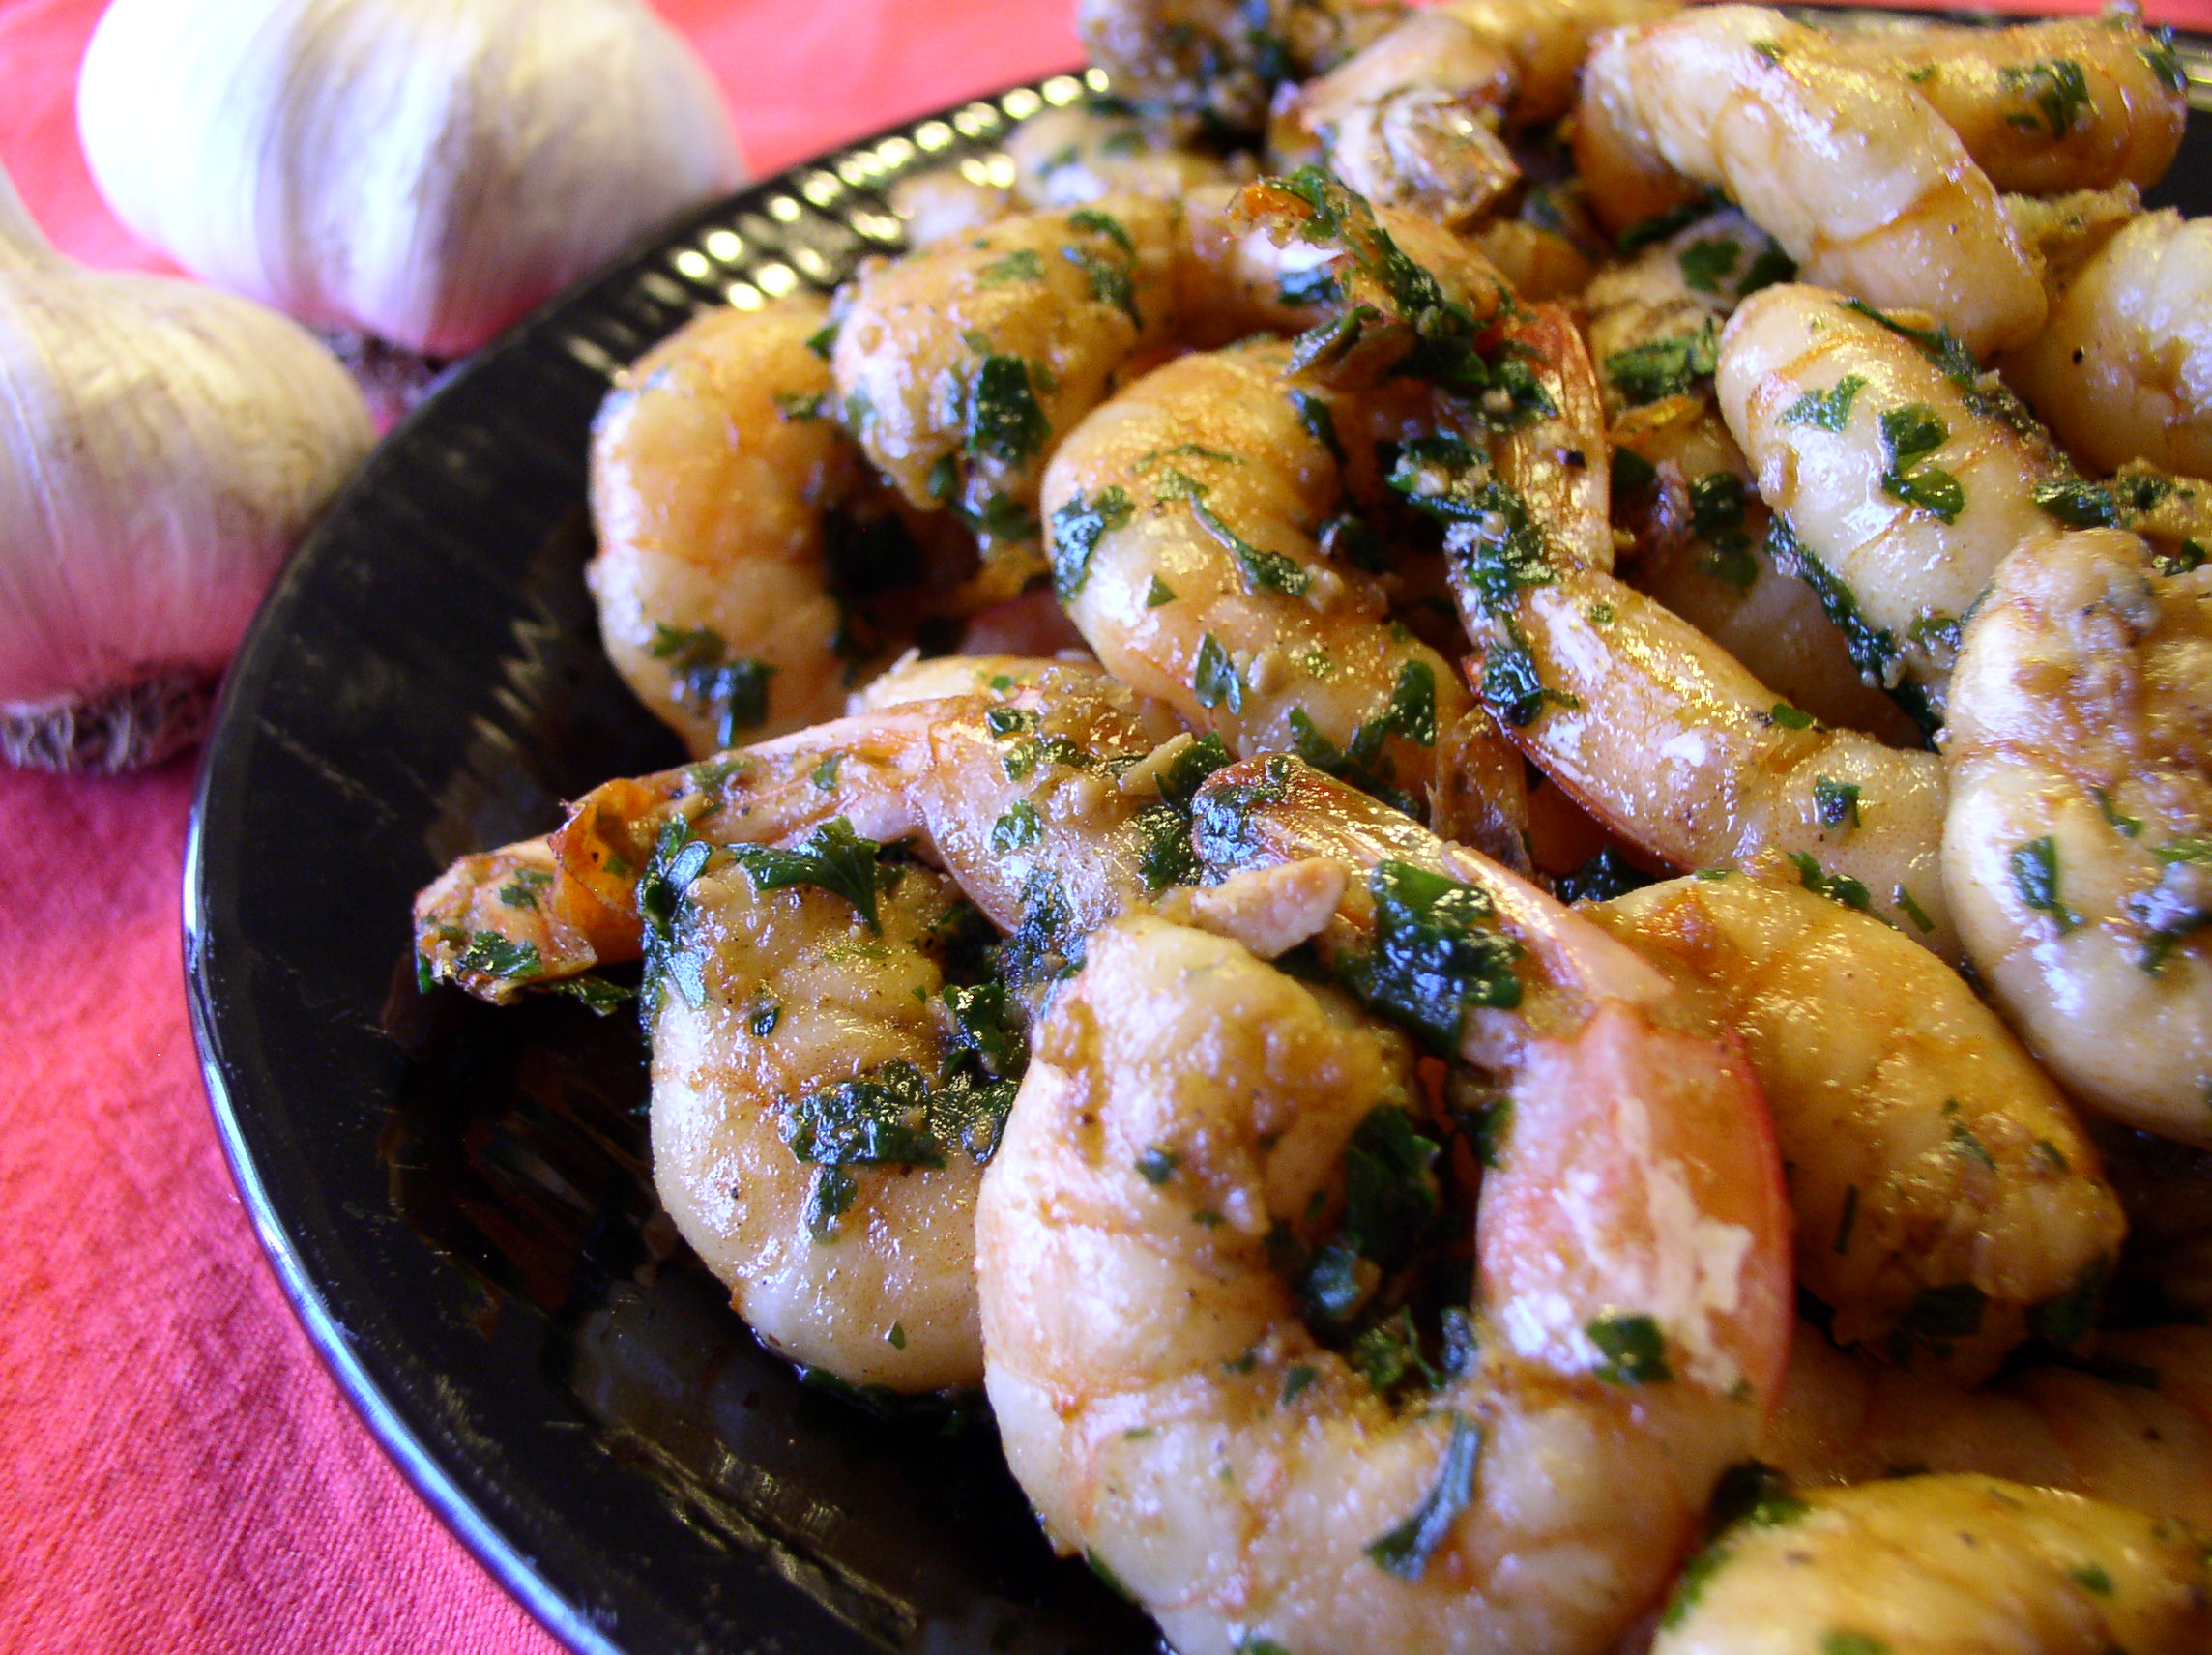 The Best Garlic Shrimp in the Whole Wide World